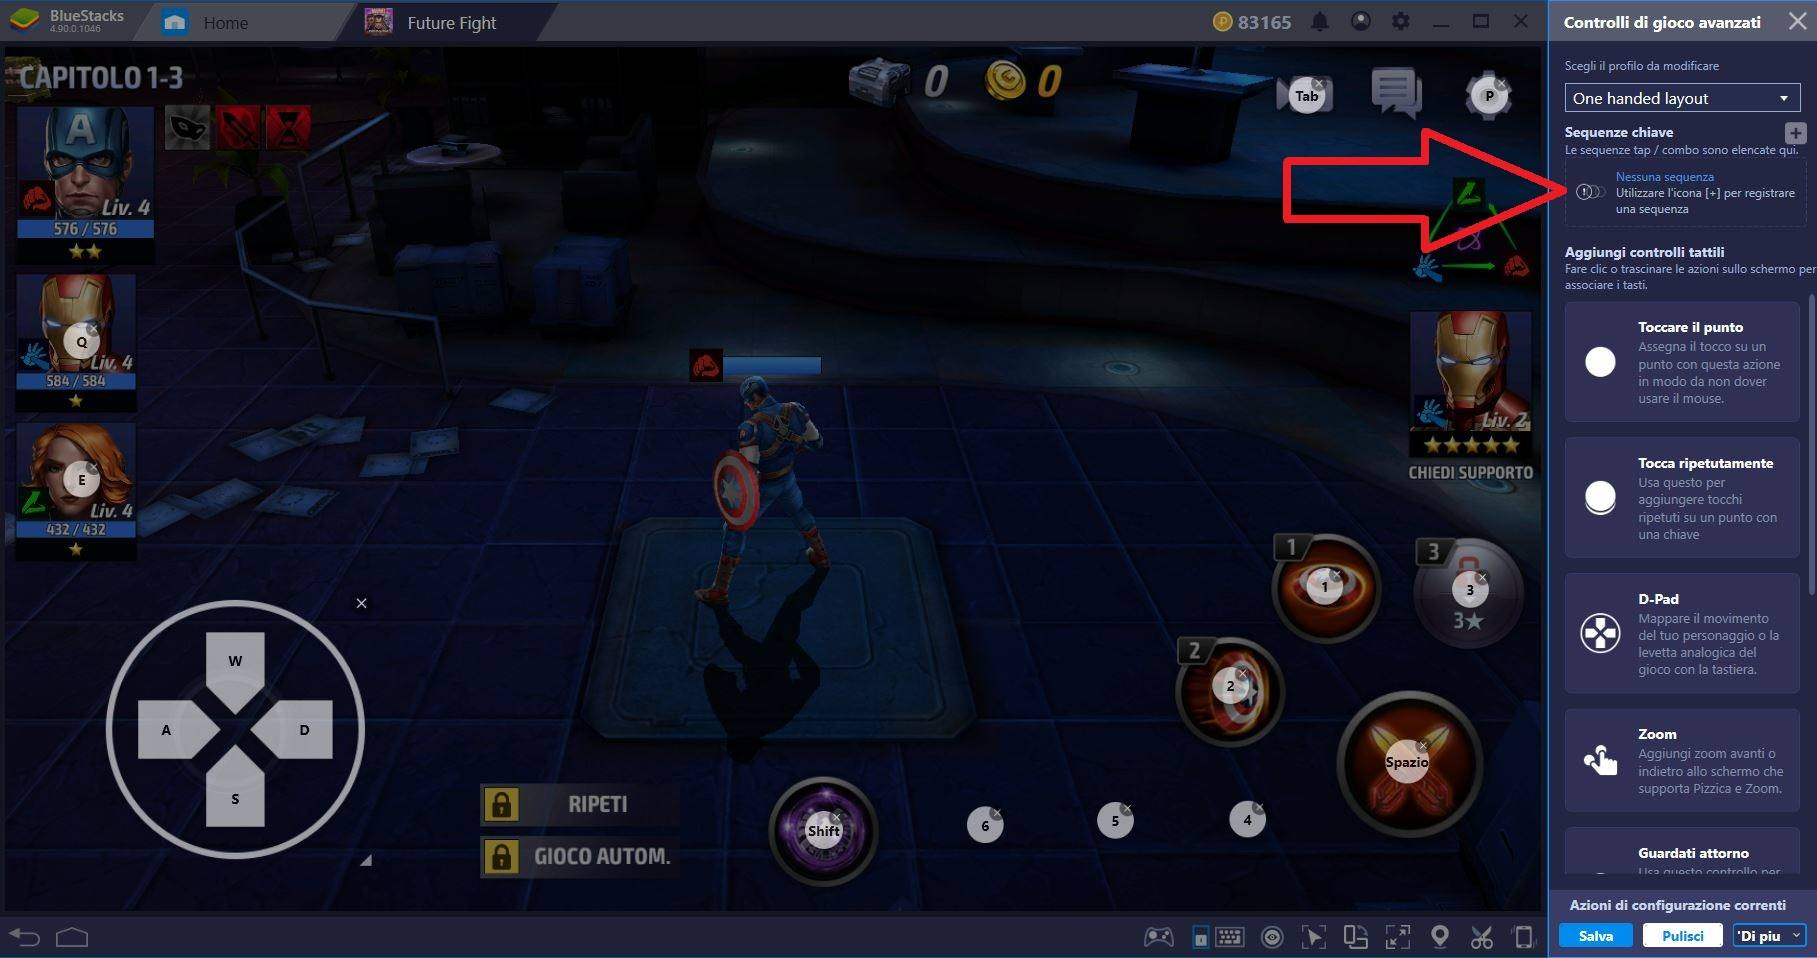 Gioca a Marvel Future Fight con Bluestacks